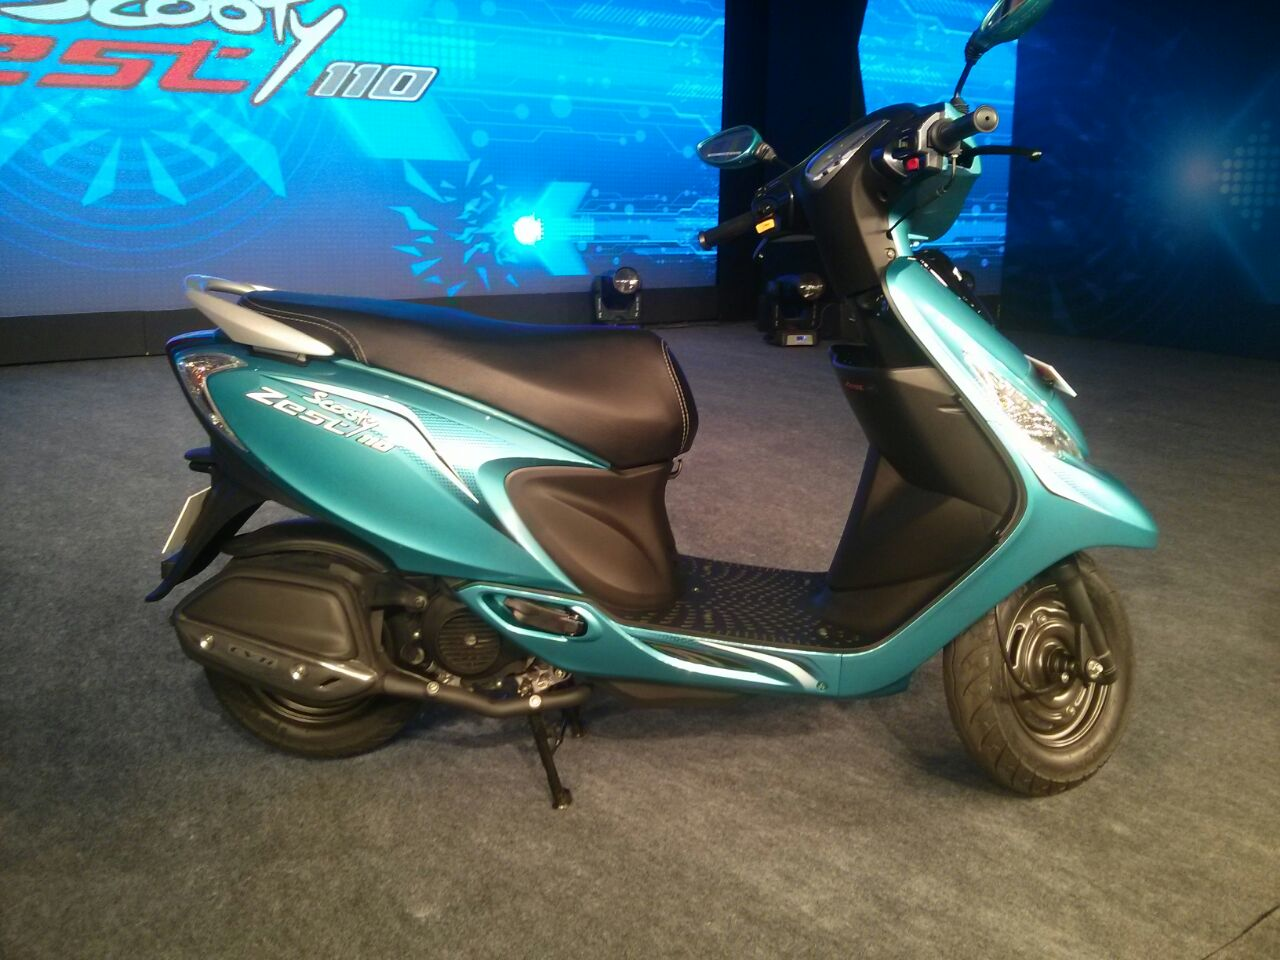 TVS Scooty Zest launched at Rs. 42,300